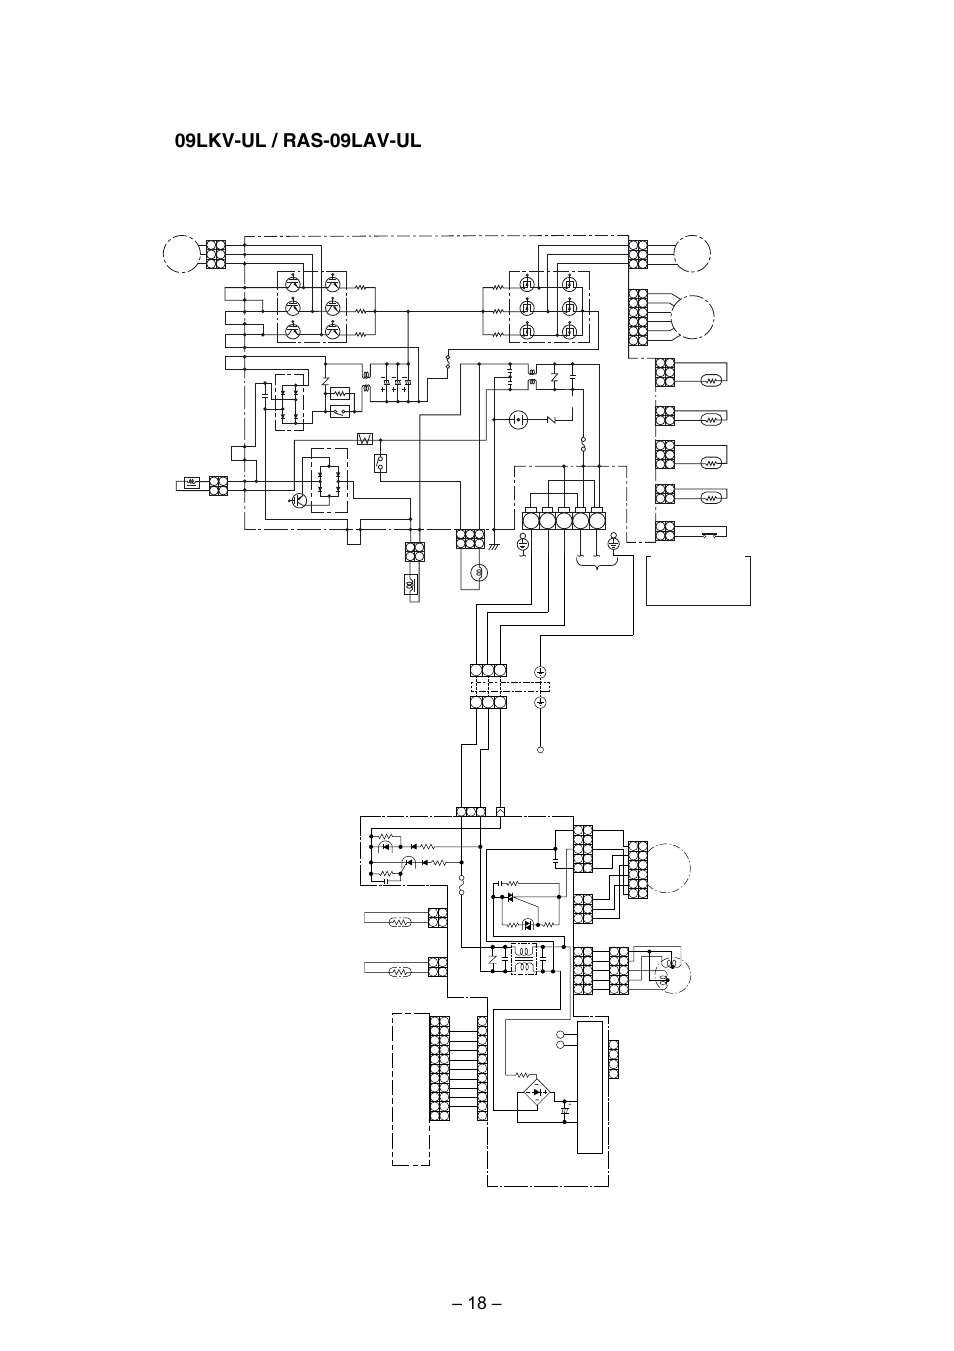 Toshiba G9 Wiring Diagram Free For You 5 1 Home Theater Schema Diagrams Rh 61 Justanotherbeautyblog De Micro Herman Miller